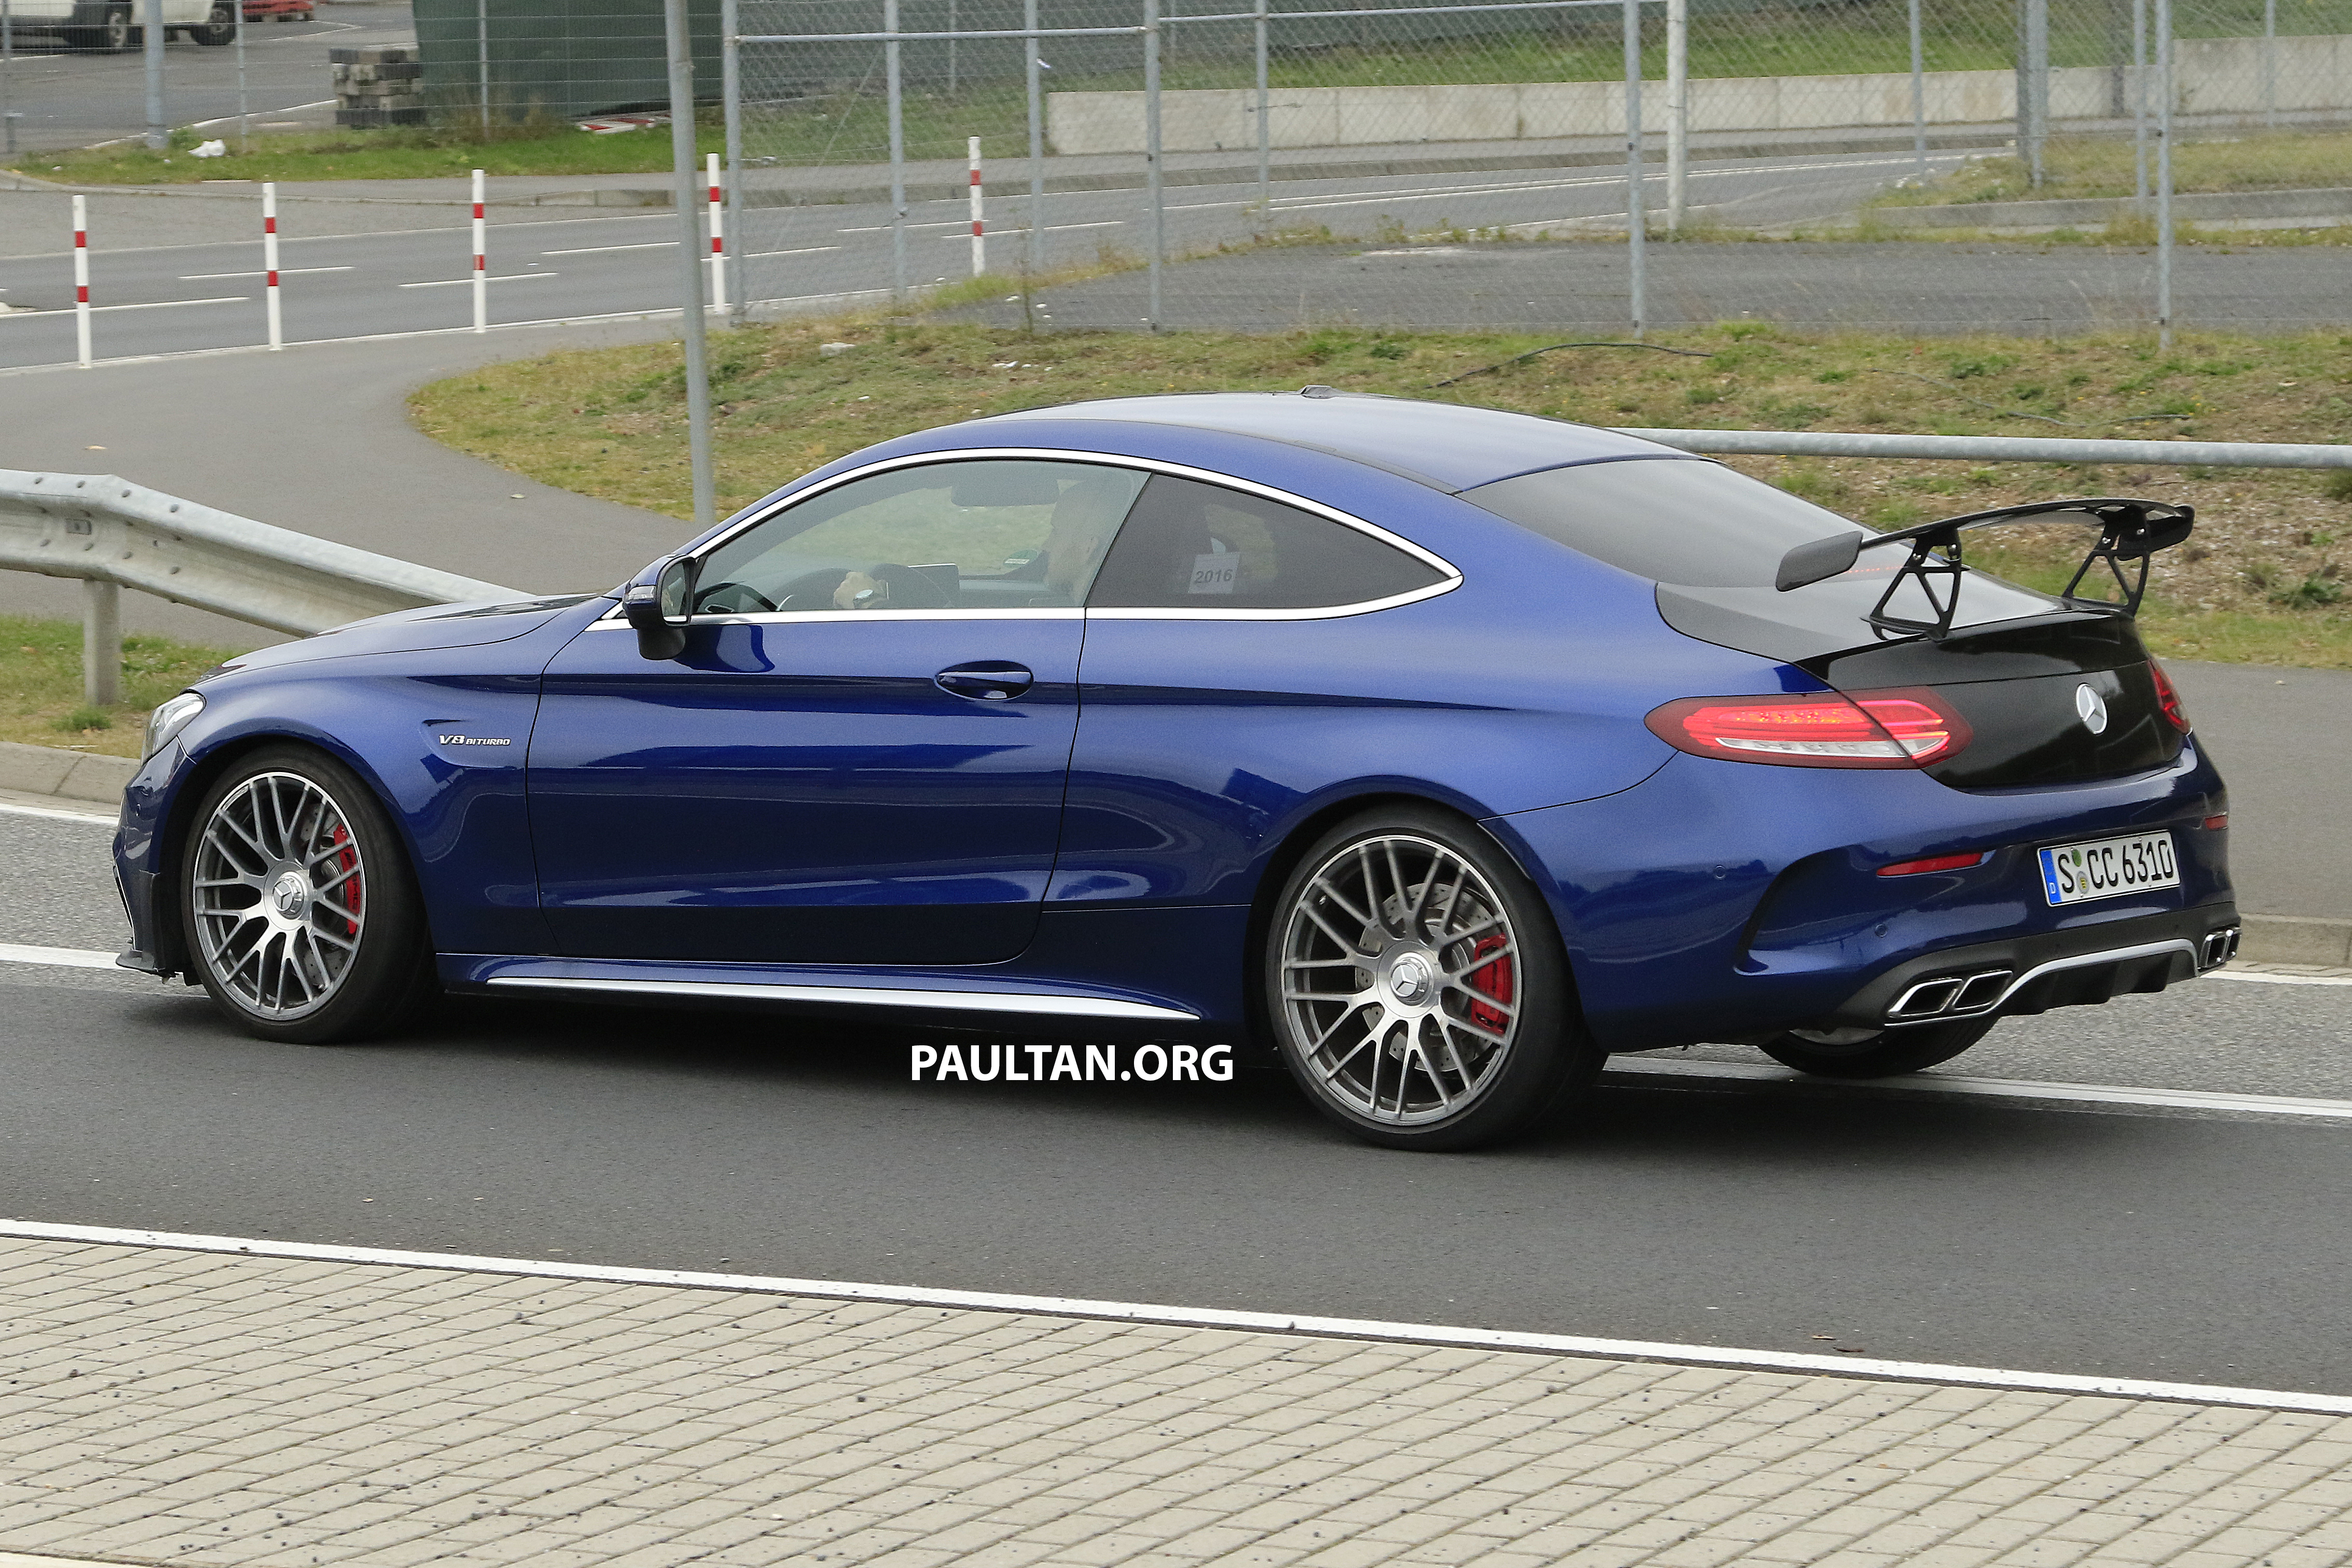 C63 Amg Coupe 2018 >> SPYSHOTS: Mercedes-AMG C63 R Coupe spotted Paul Tan - Image 561804